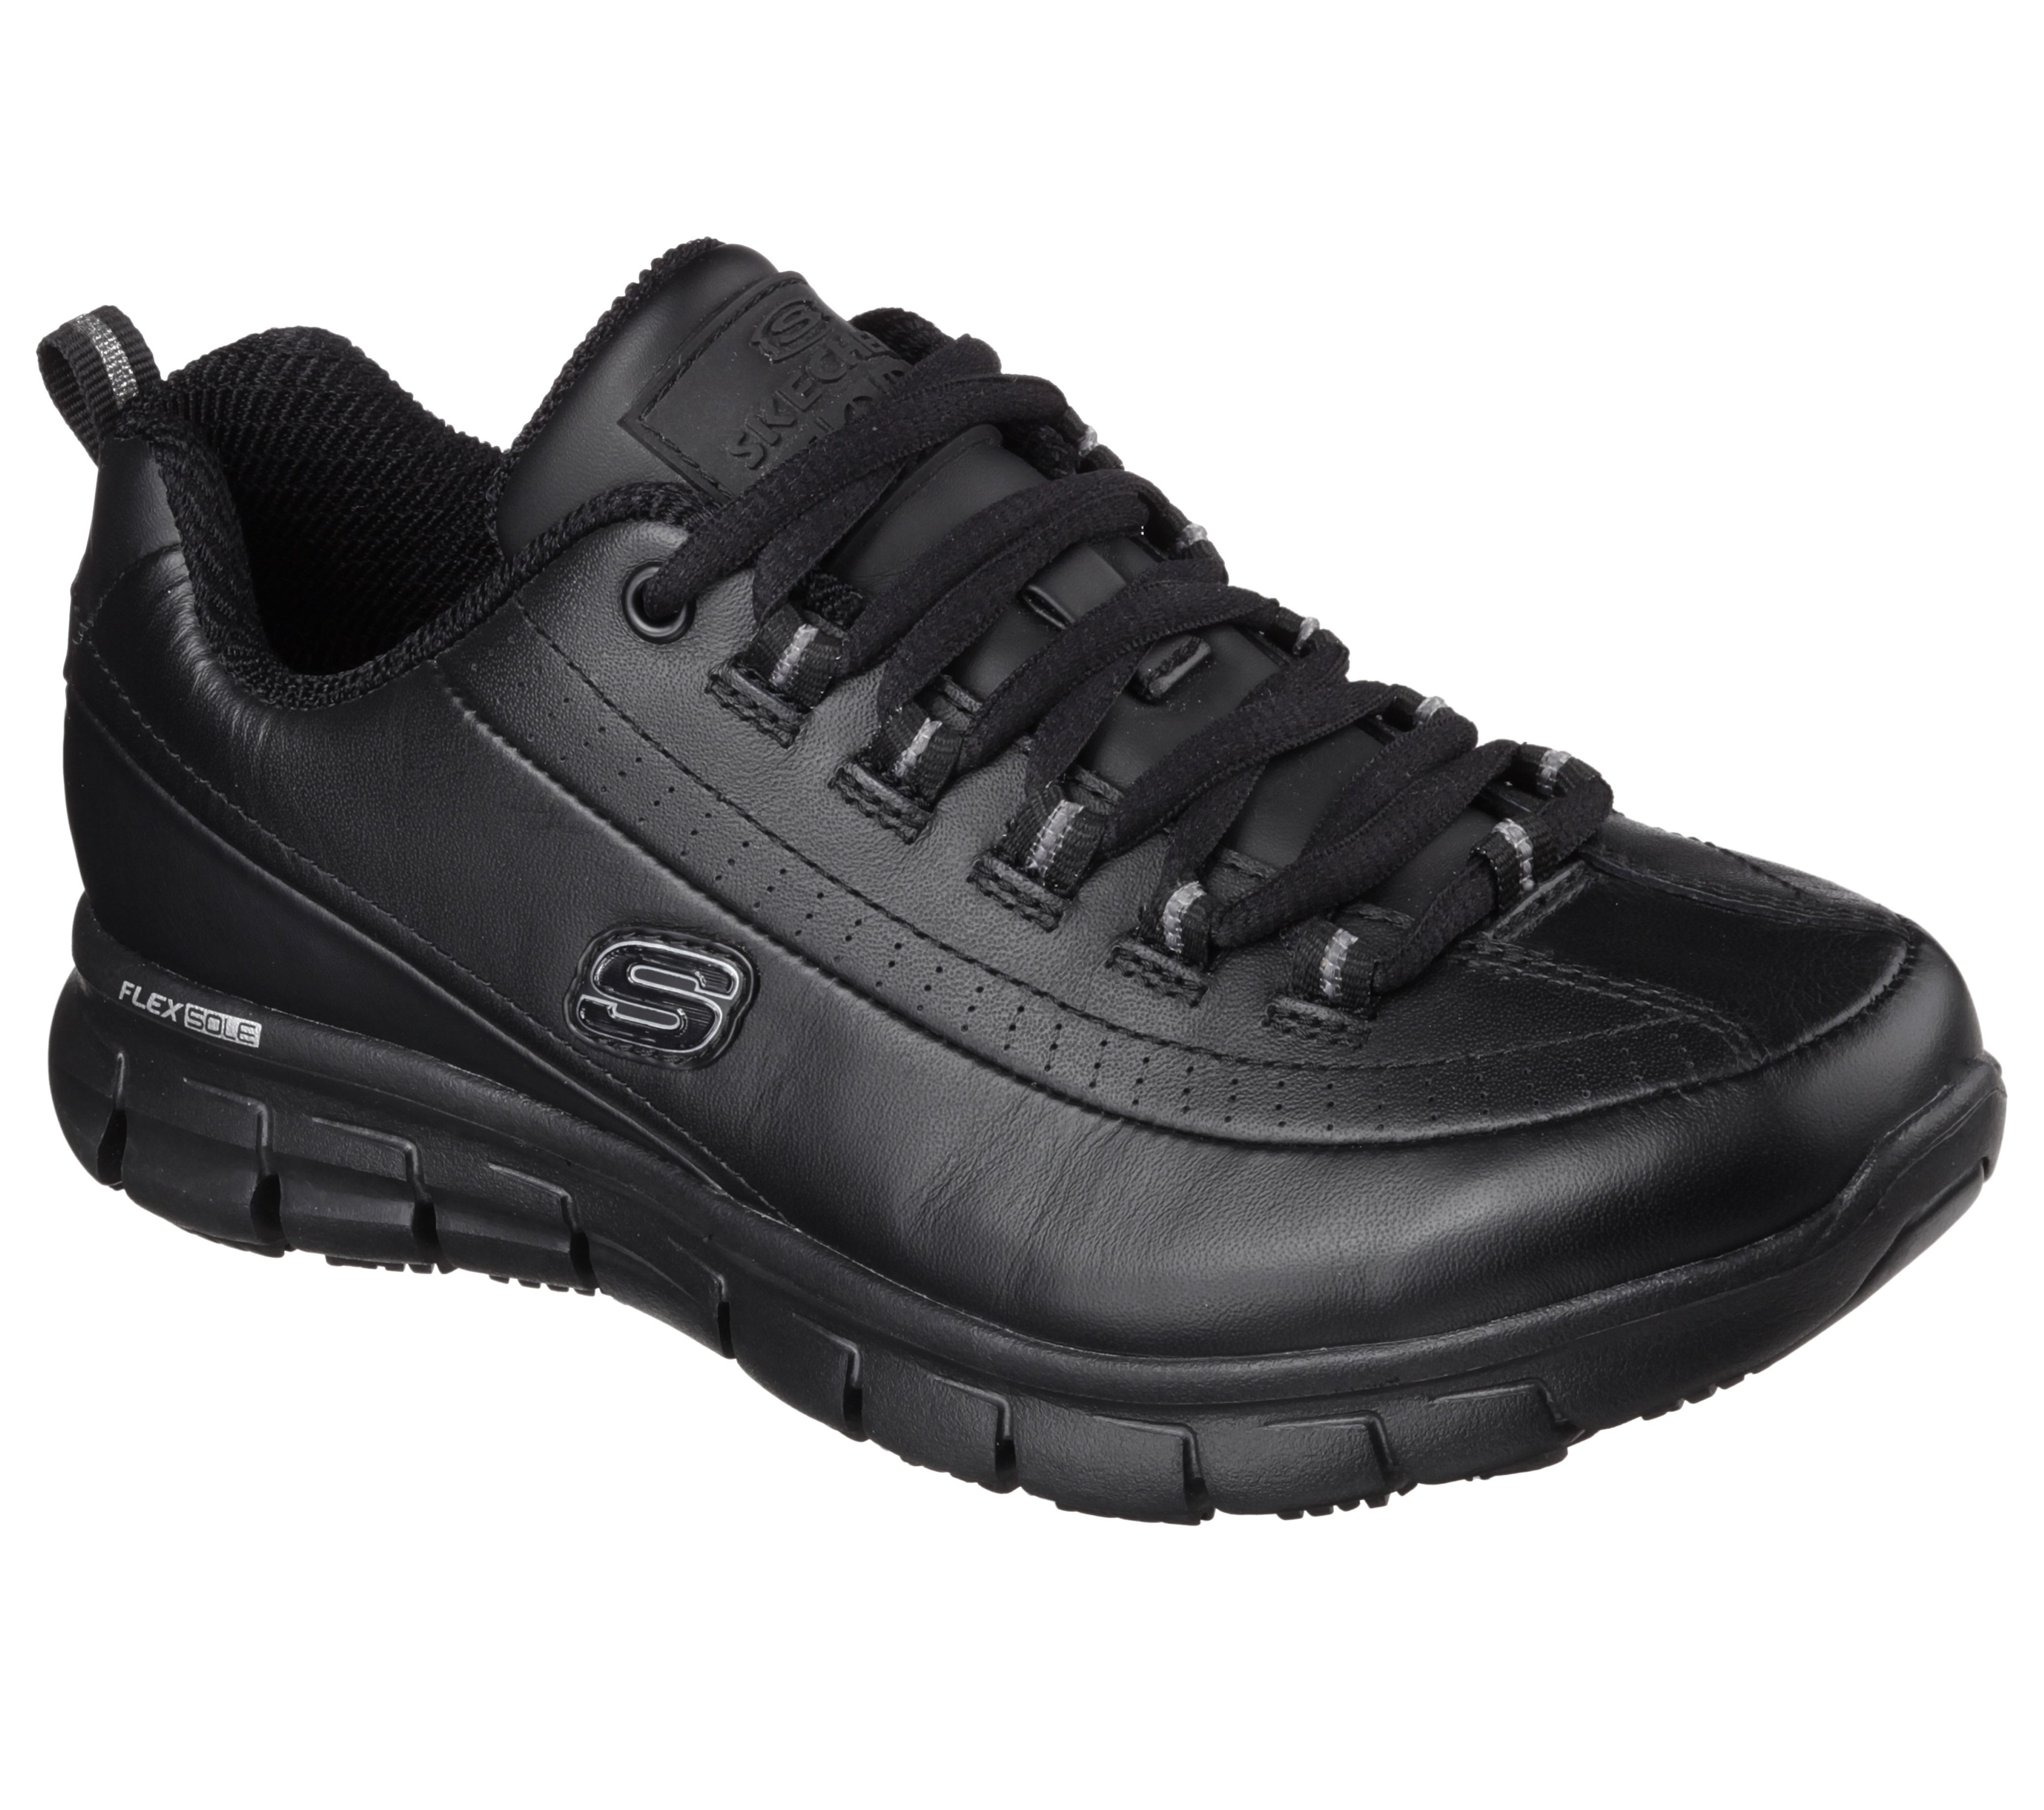 Skechers Relaxed Fit SR Athletic